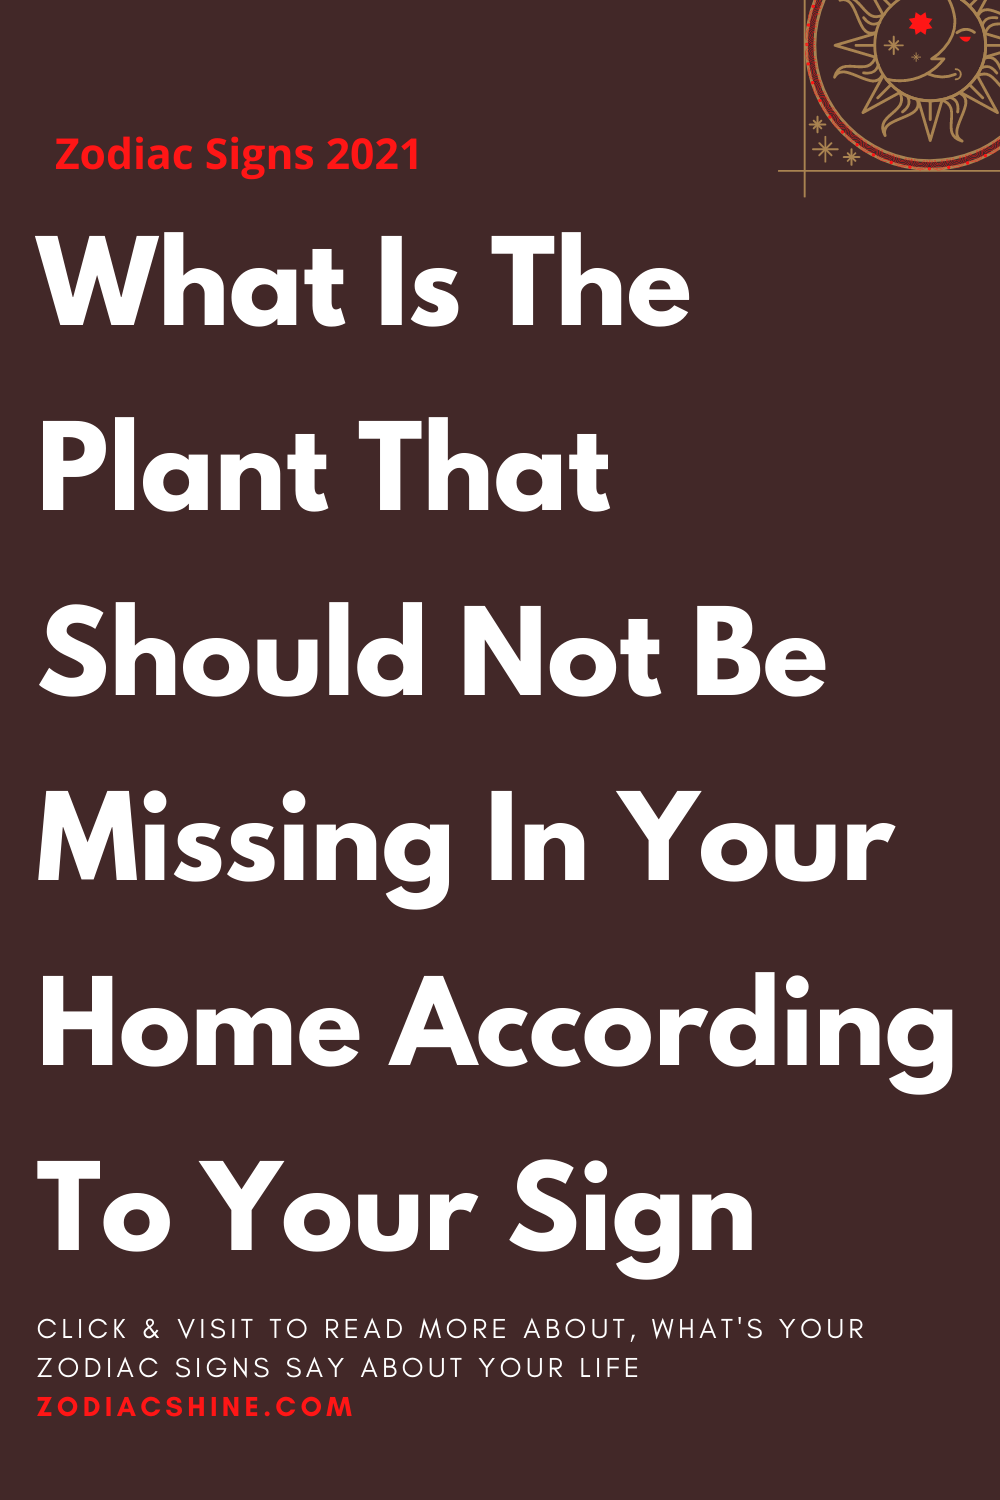 What Is The Plant That Should Not Be Missing In Your Home According To Your Sign